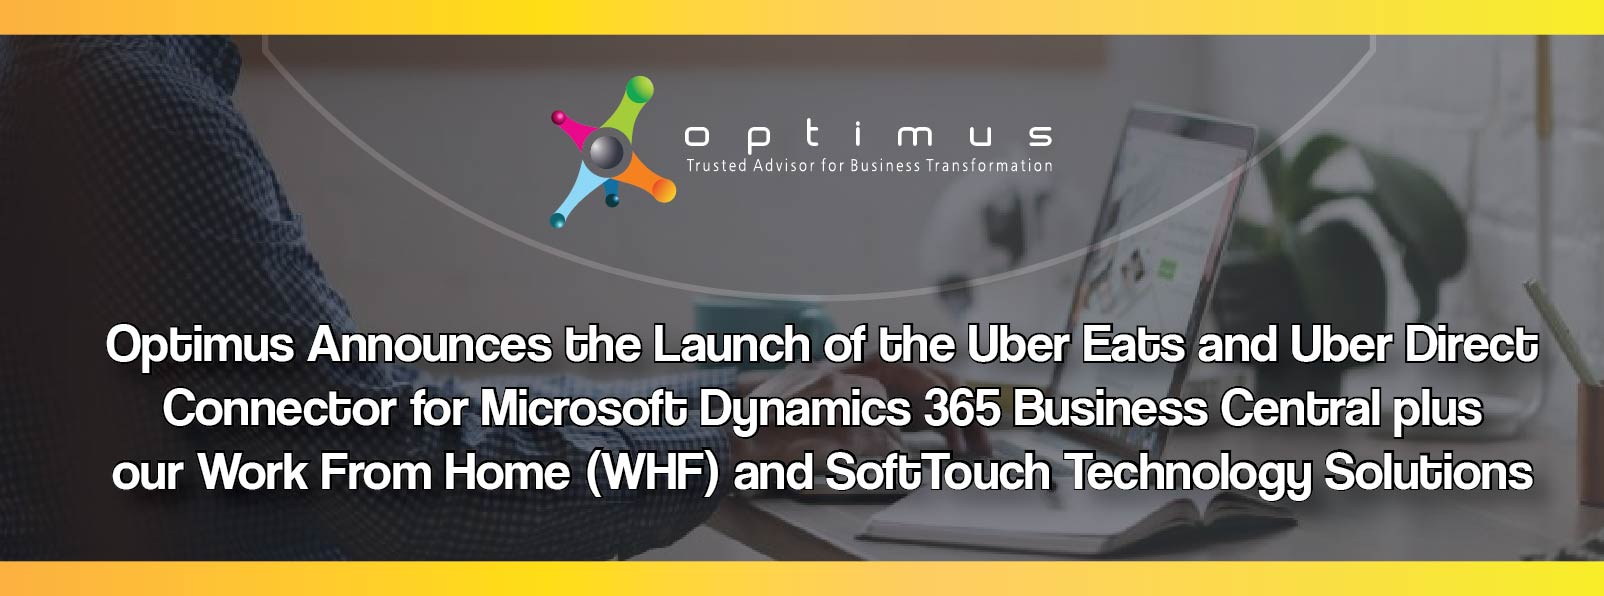 Optimus Announces The Launch Of The Uber Eats And Uber Direct Connector For Microsoft Dynamics 365 Business Central Plus Our Work From Home (WHF) And SoftTouch Technology Solutions